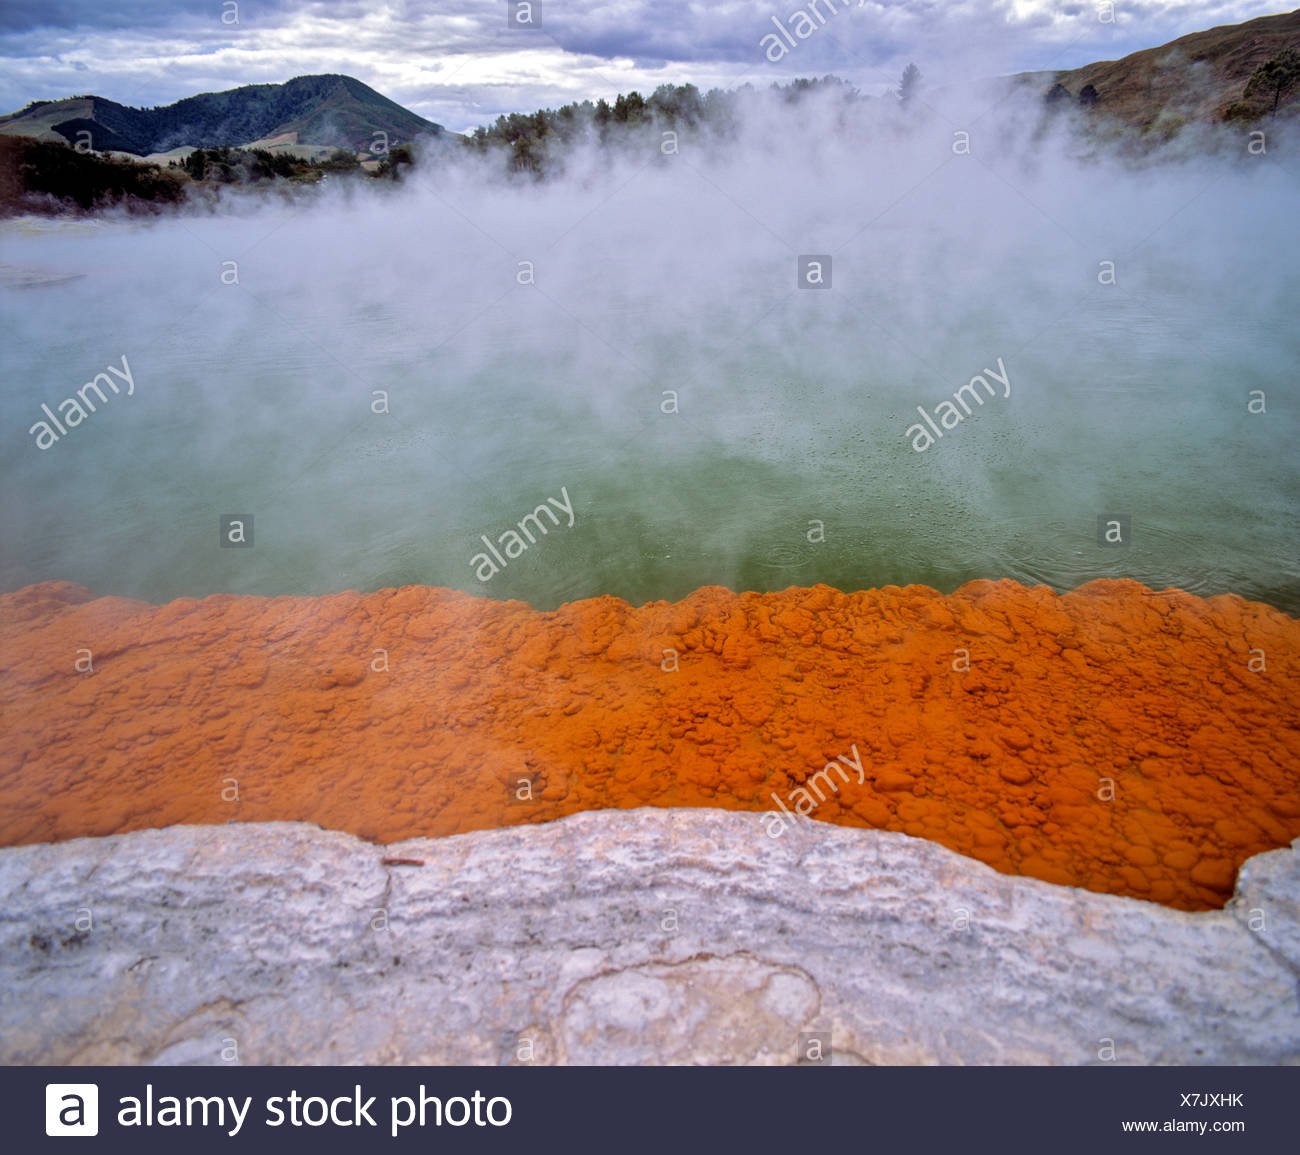 Champagne Pool, hot springs, geothermal area Waiotapu, Rotorua, North Island, New Zealand Stock Photo